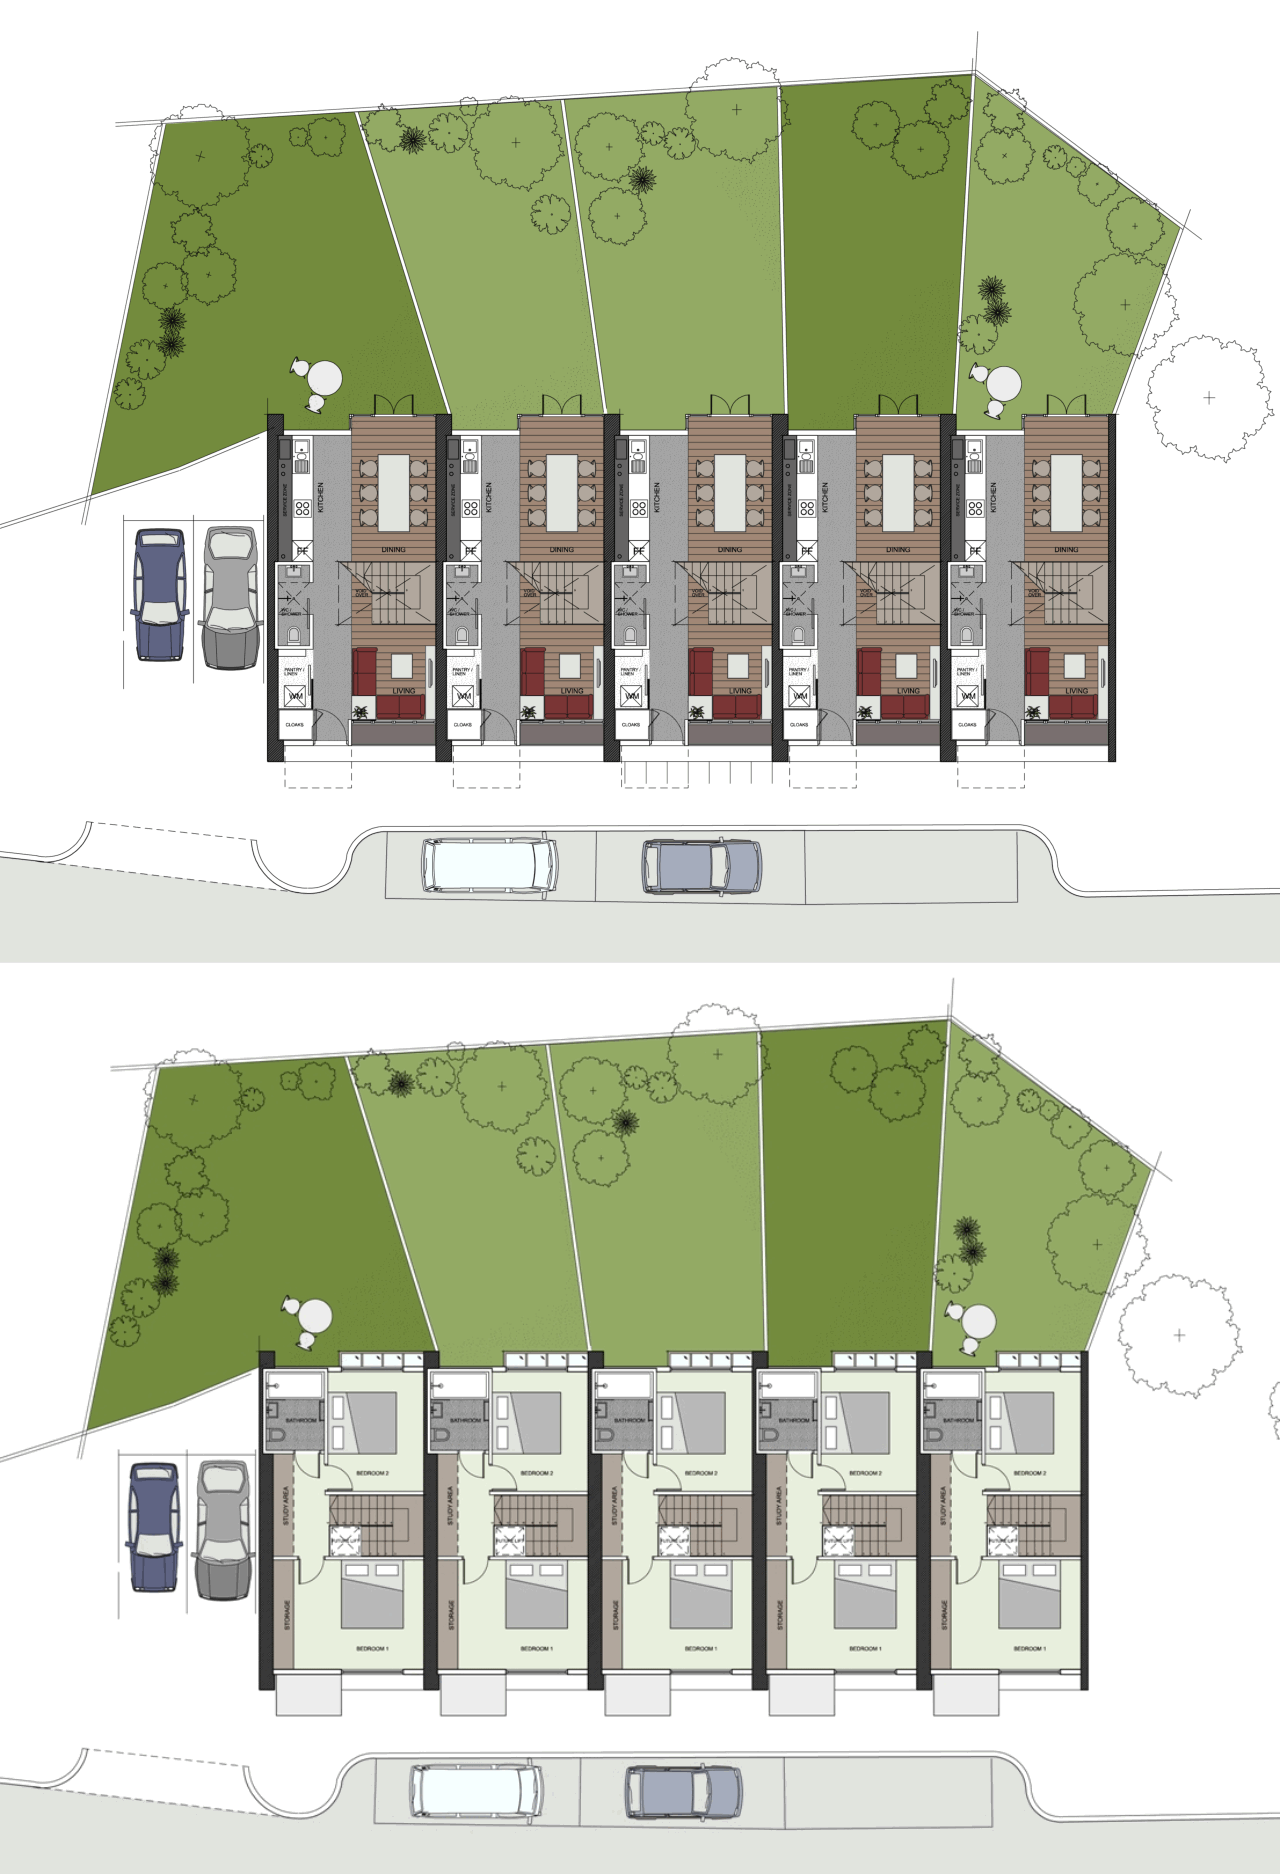 d433234bda2b7d41e8806ba32fa5cd6d - View Small House Design Uk Pictures